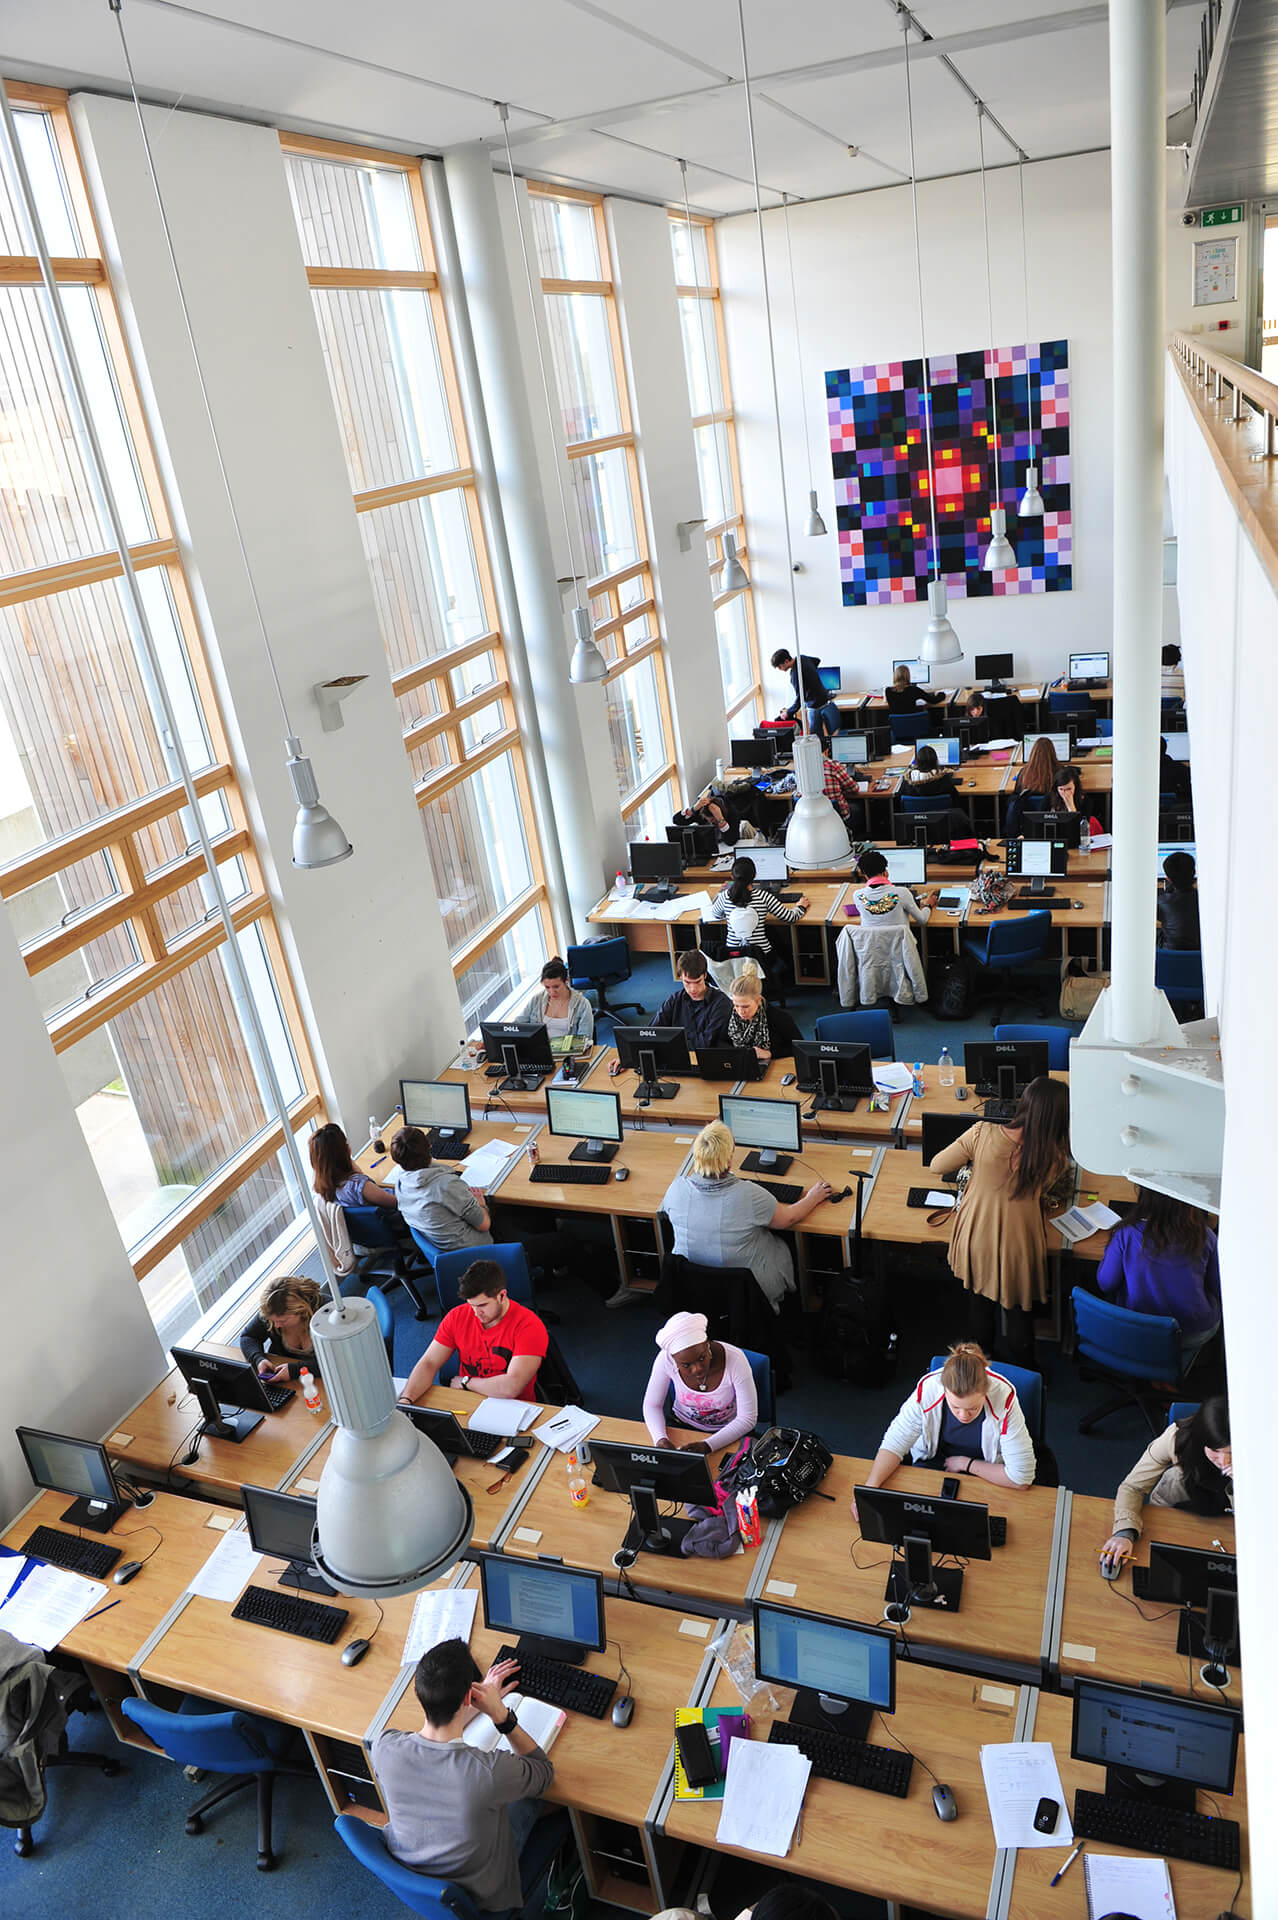 View of students using the UEA library